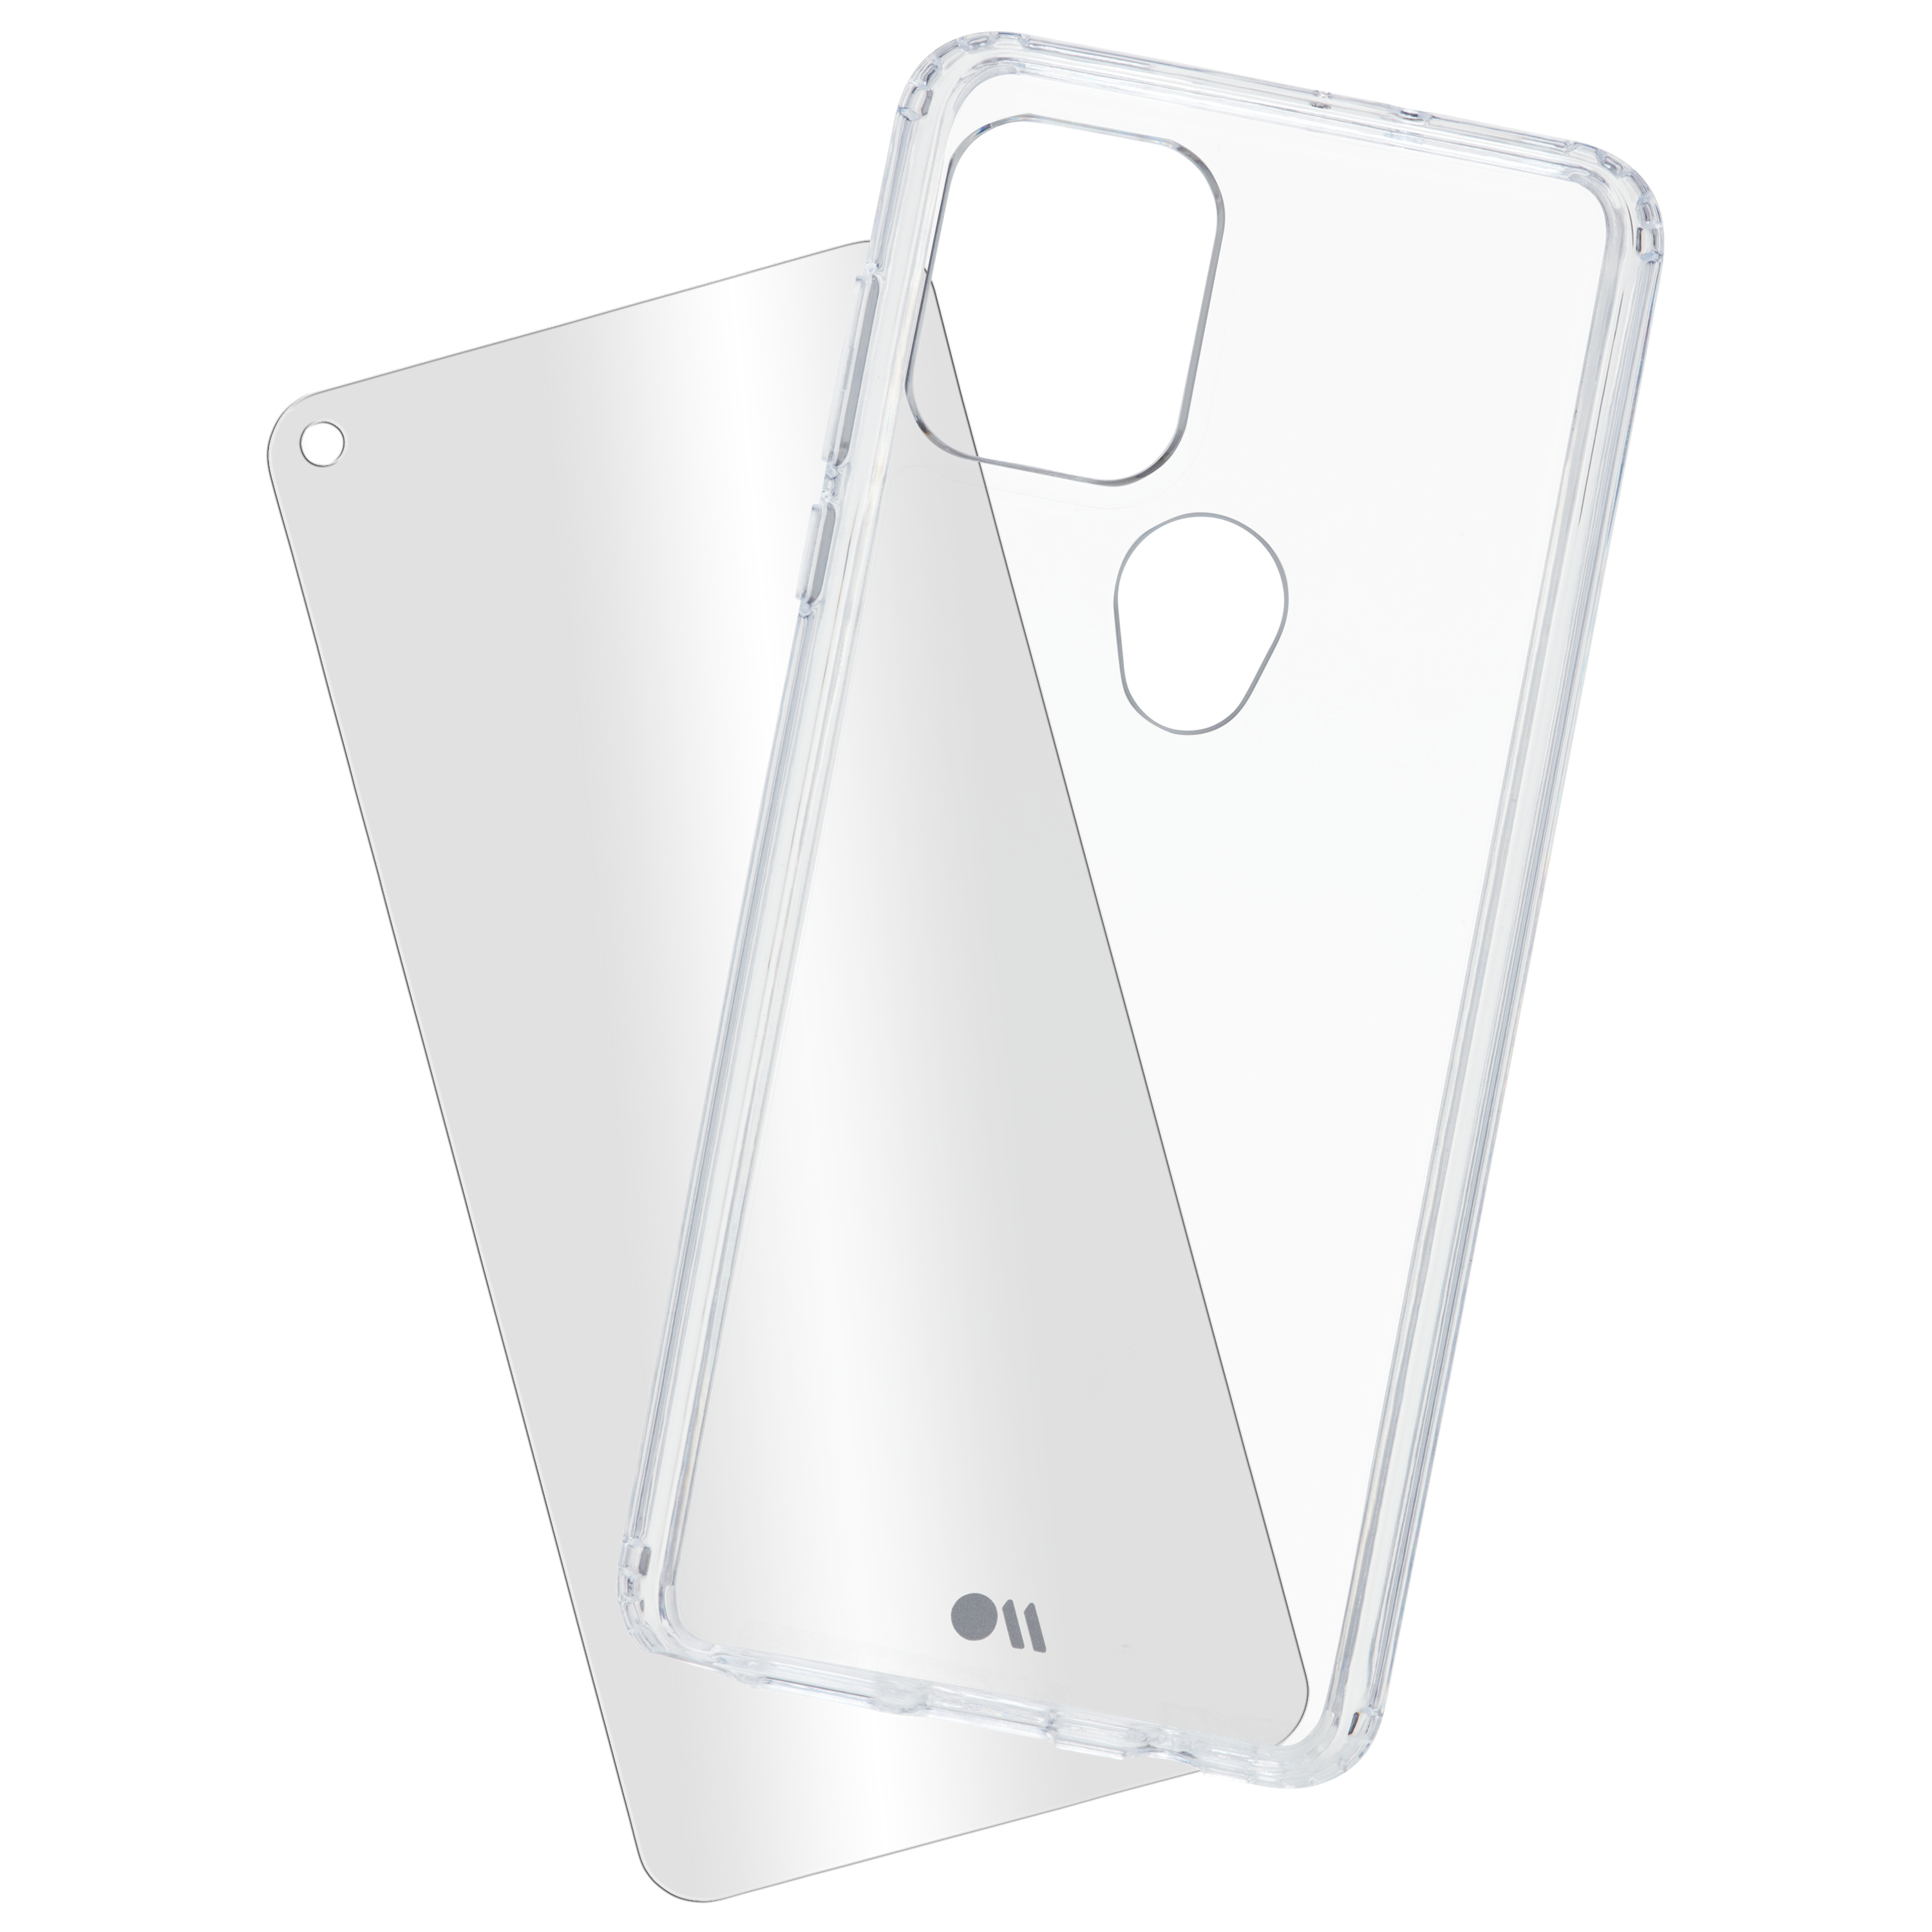 Case-Mate - Protection Pack Tough Case and Glass Screen Protector for Motorola Moto G Stylus 5G (2021) - Clear